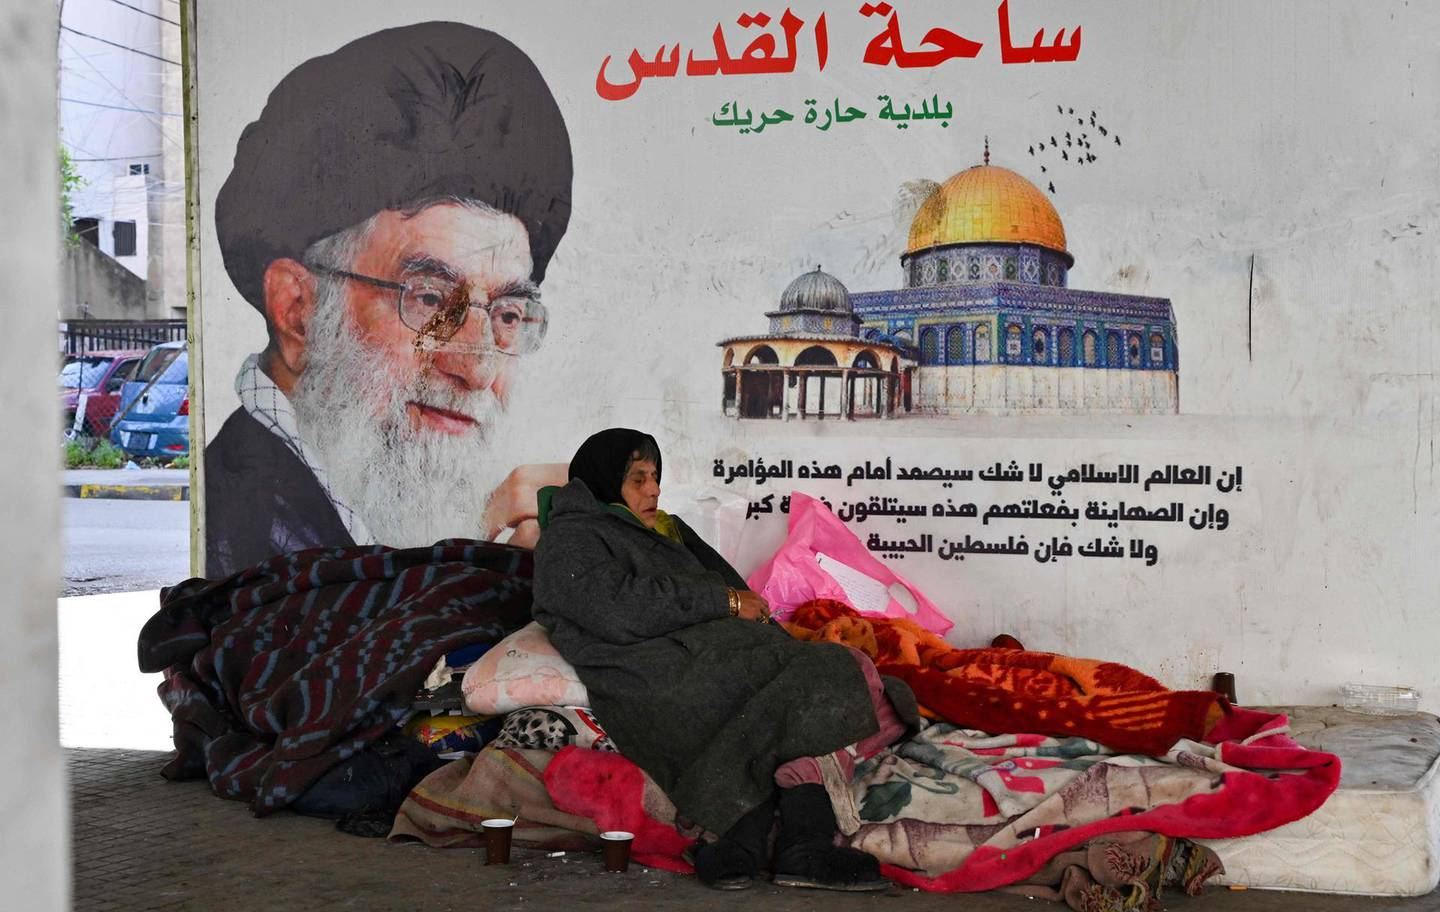 A homeless woman sits on a mattress under a poster of Iranian President Ali Khamenei and Jerusalem's Dome of the Rock shrine, in Haret Hreik, in the Lebanese capital Beirut's southern suburbs, on February 14, 2021.  / AFP / -